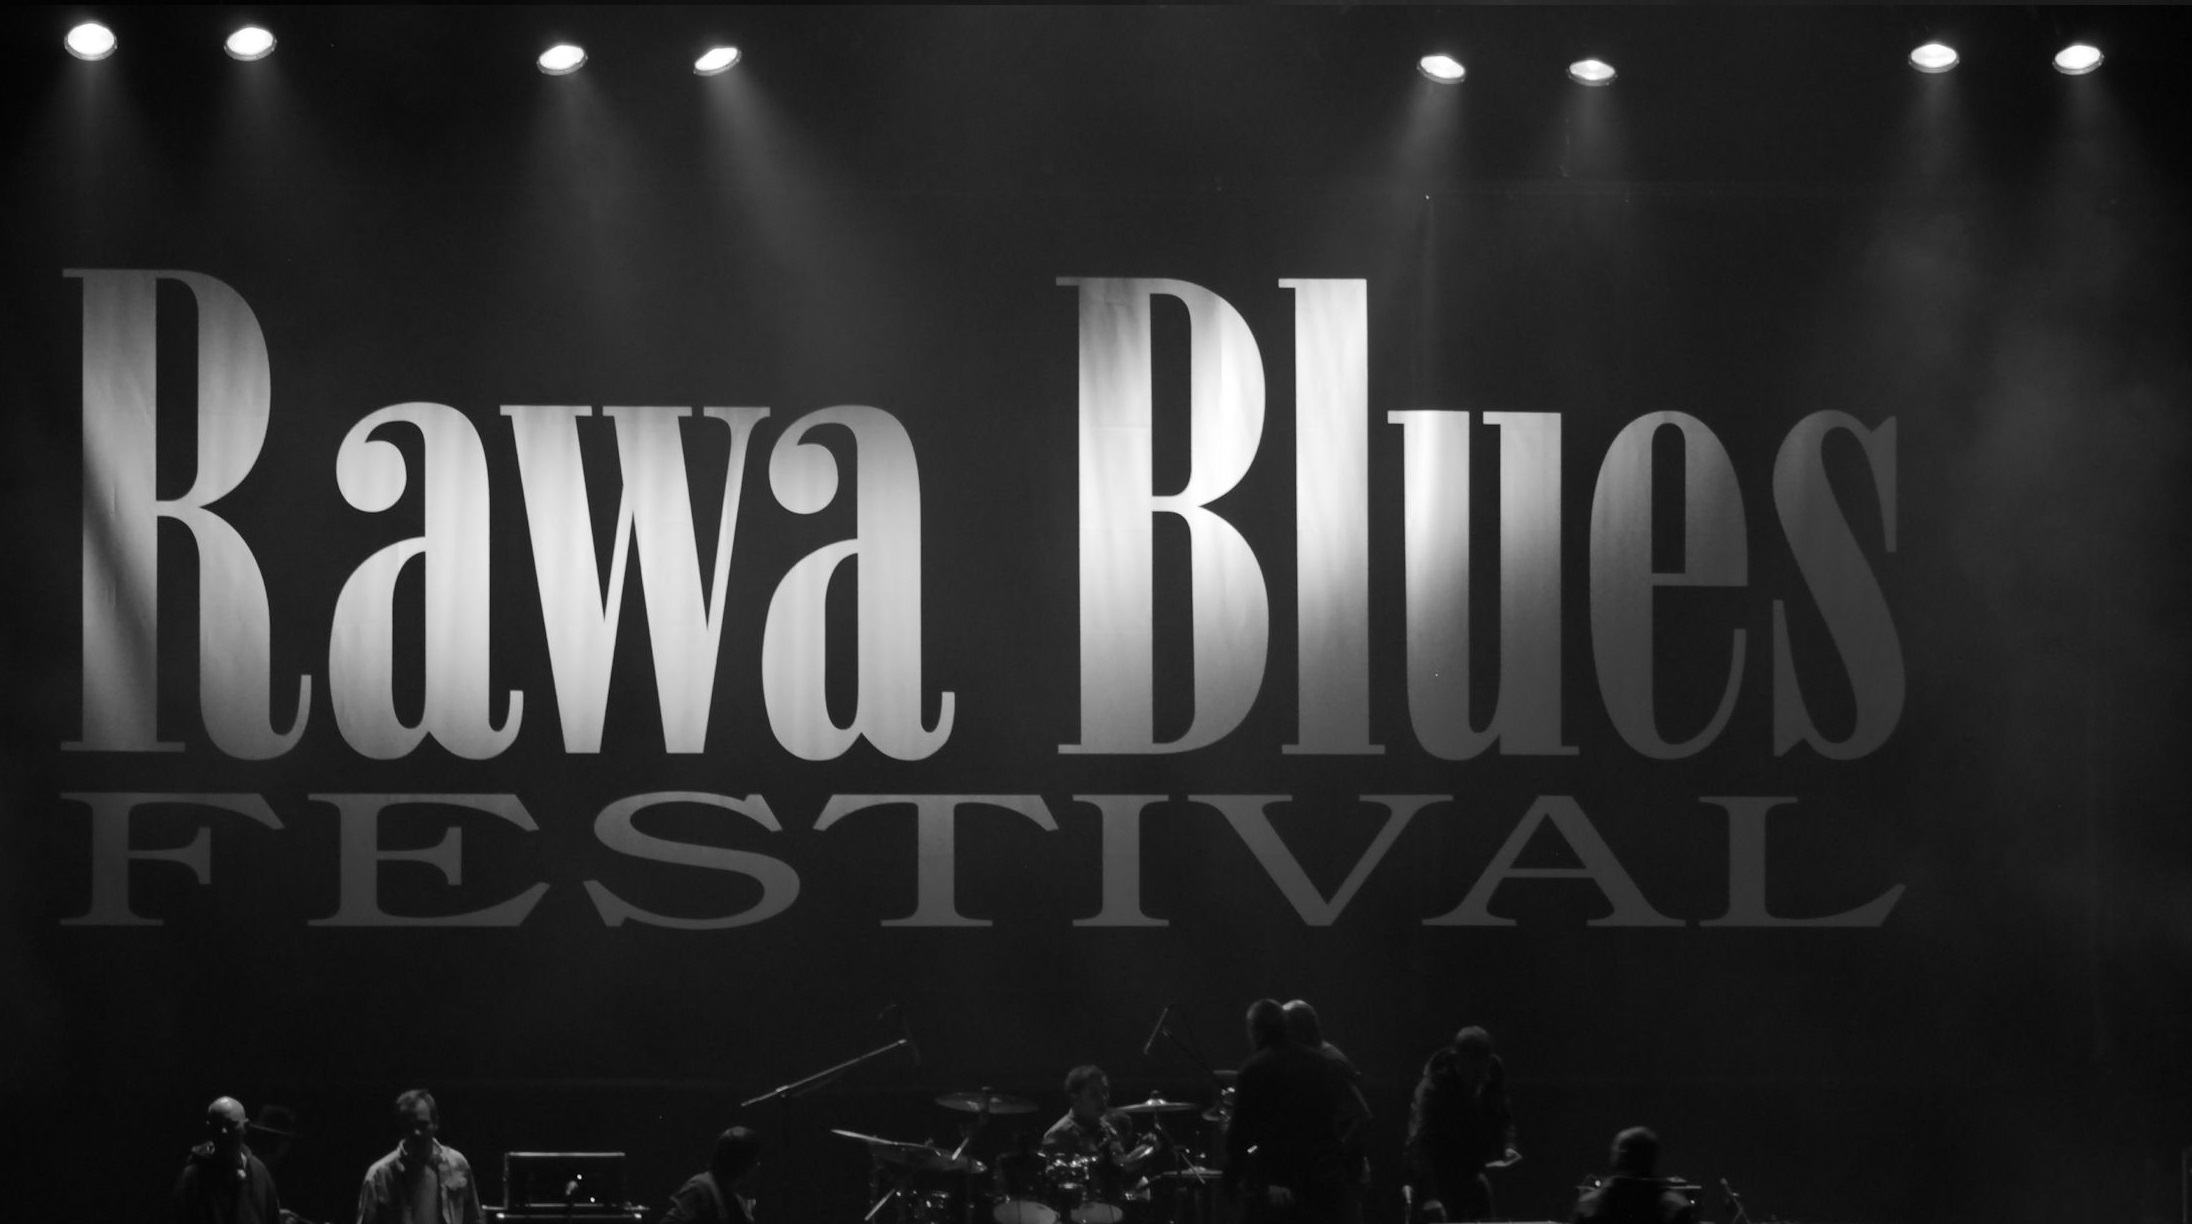 Rava-blues-festival